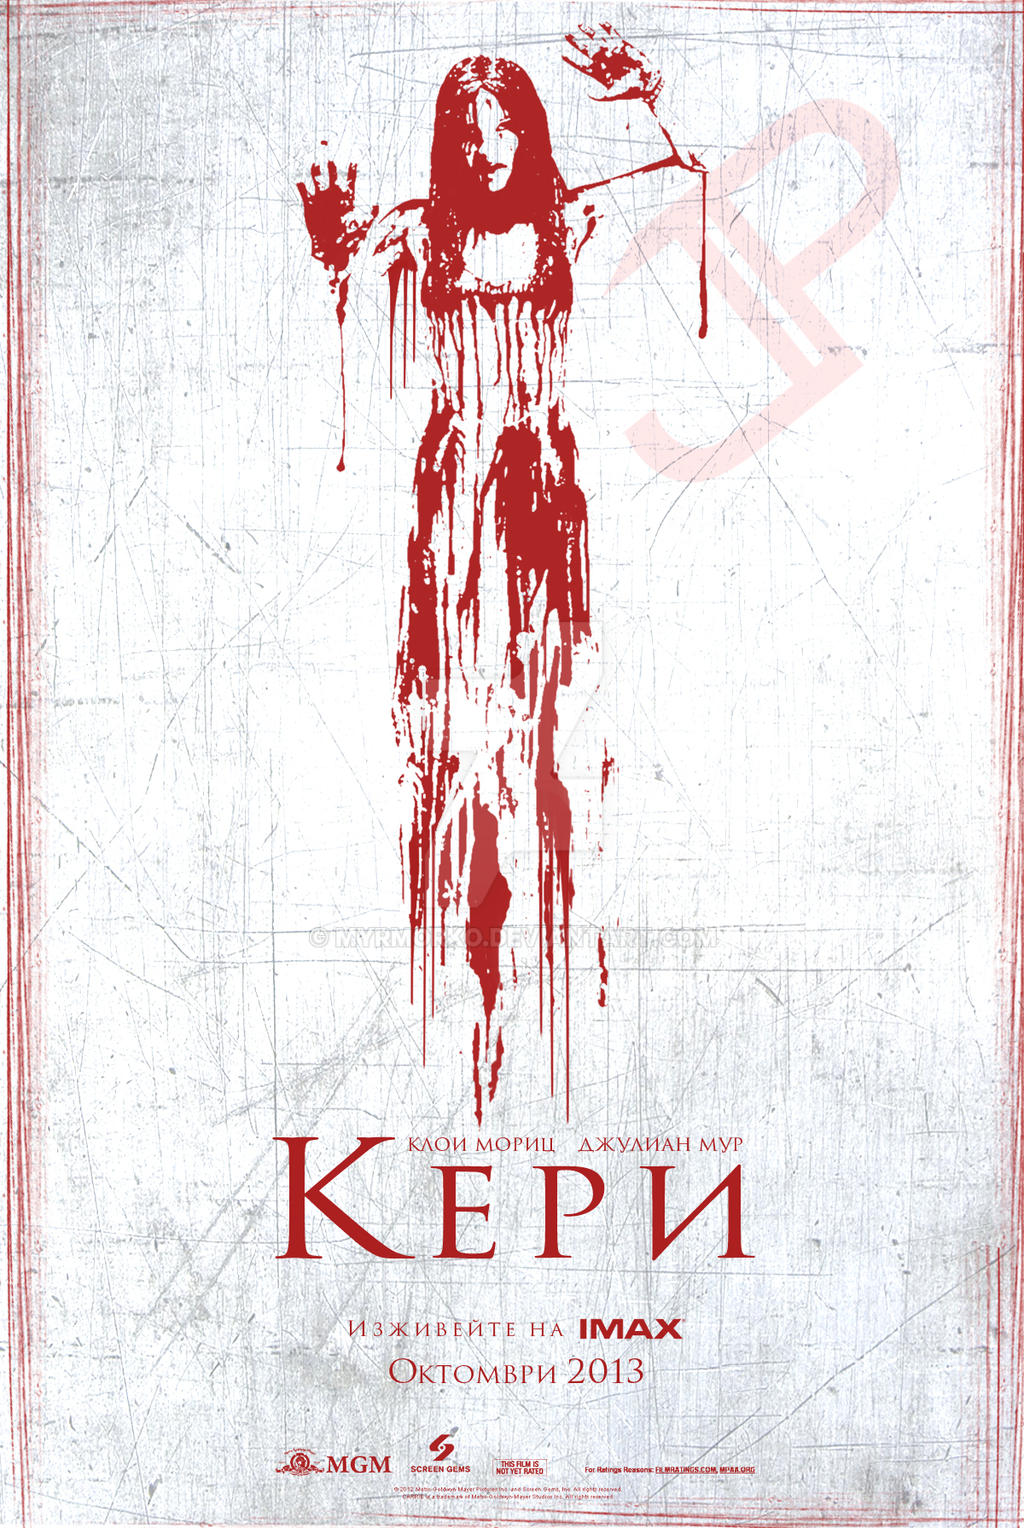 Carrie 2013 Bulgarian Poster By Myrmorko On Deviantart